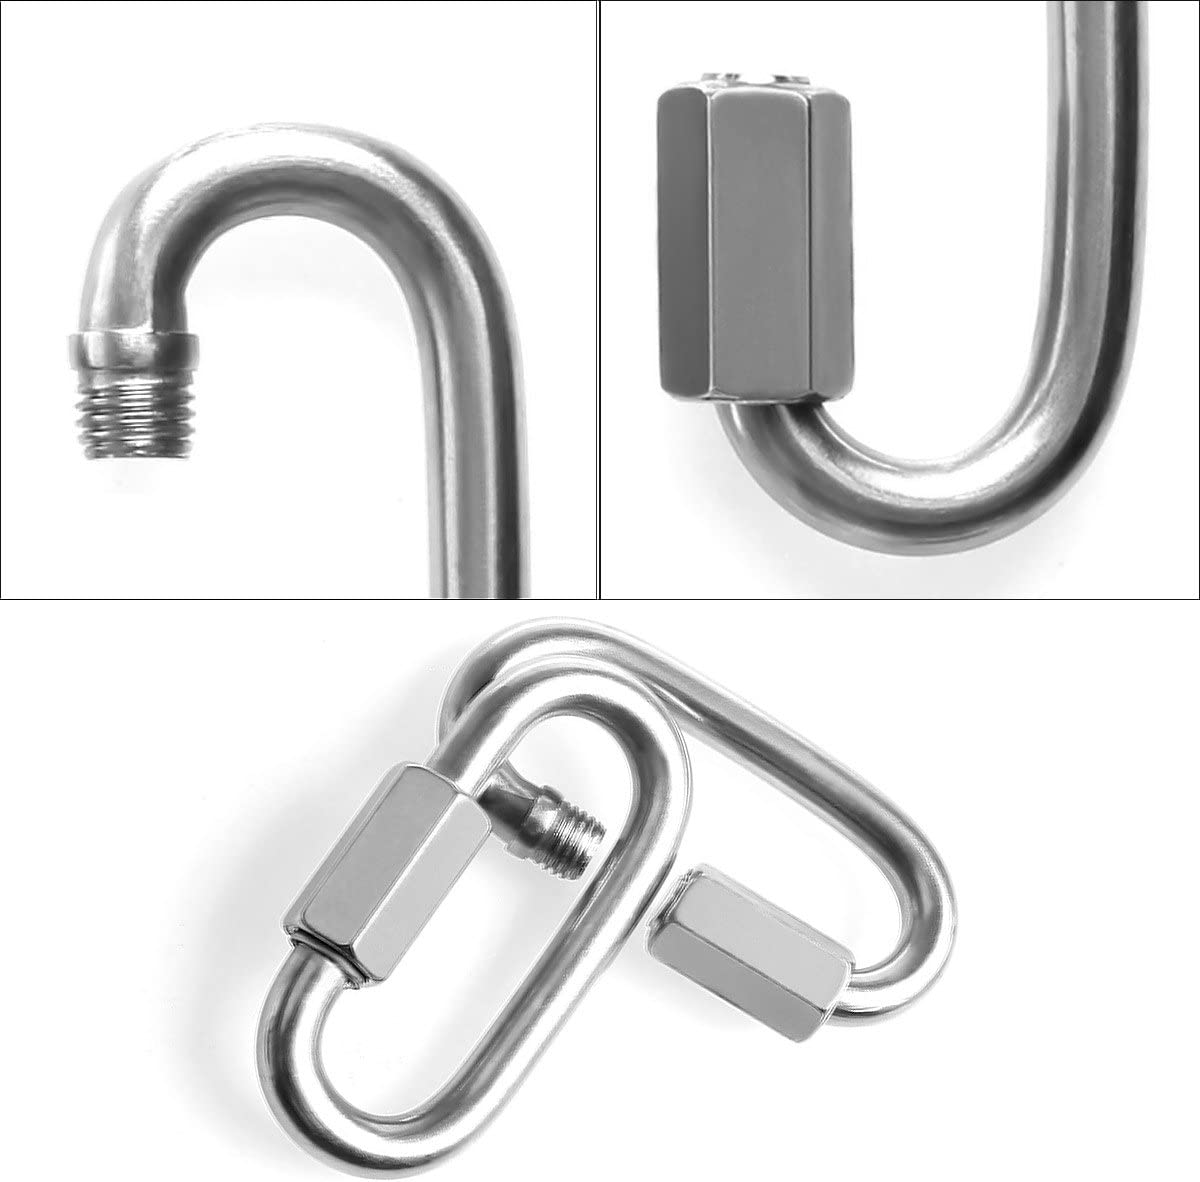 8mm Quick Link Oval Carabiner Chain Links Connector 4pcs M8 Stainless Steel Clip